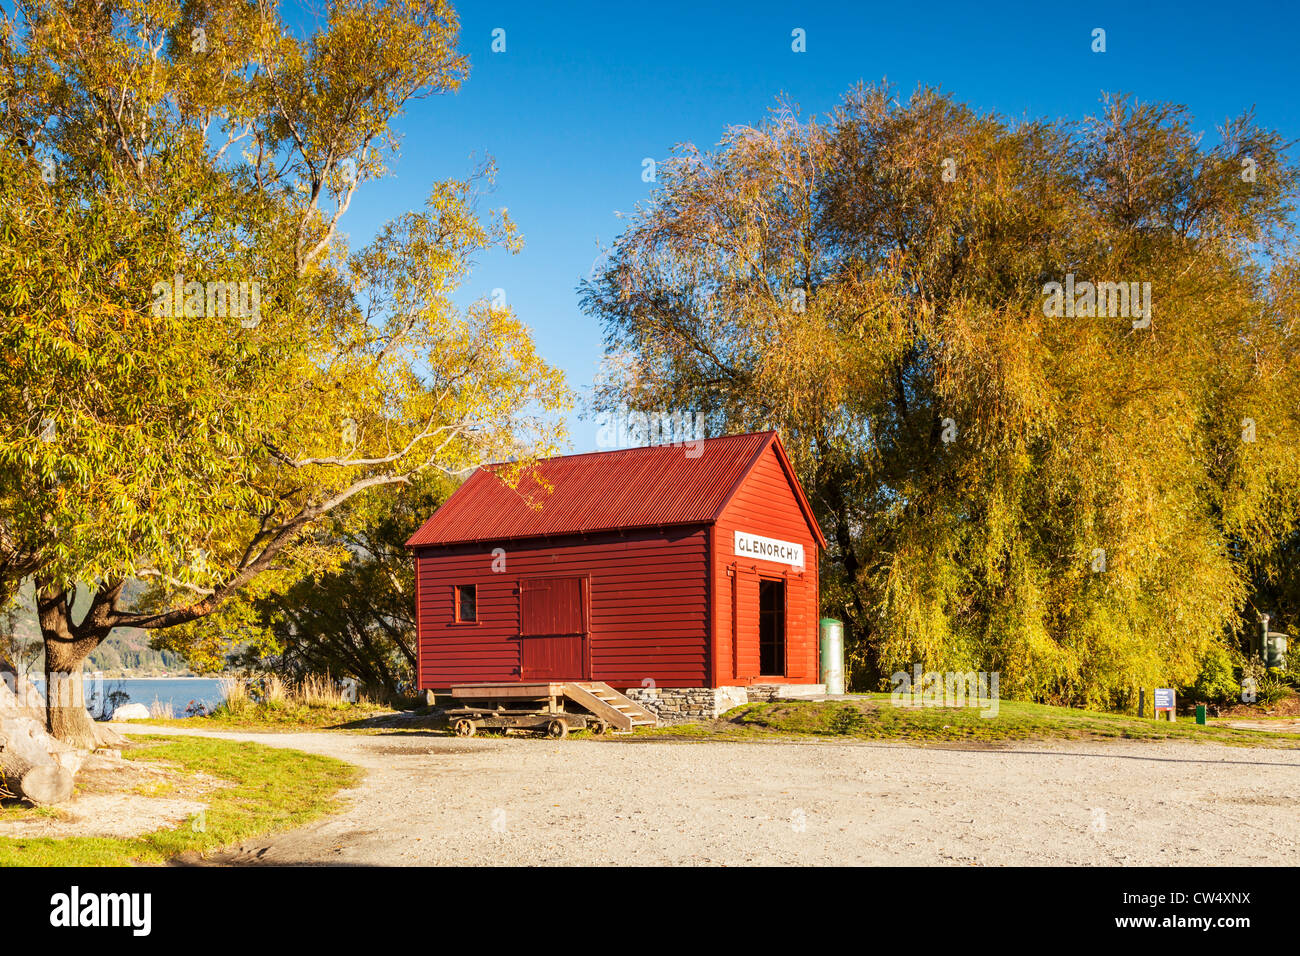 Wharf Shed Glenorchy New Zealand - Stock Image